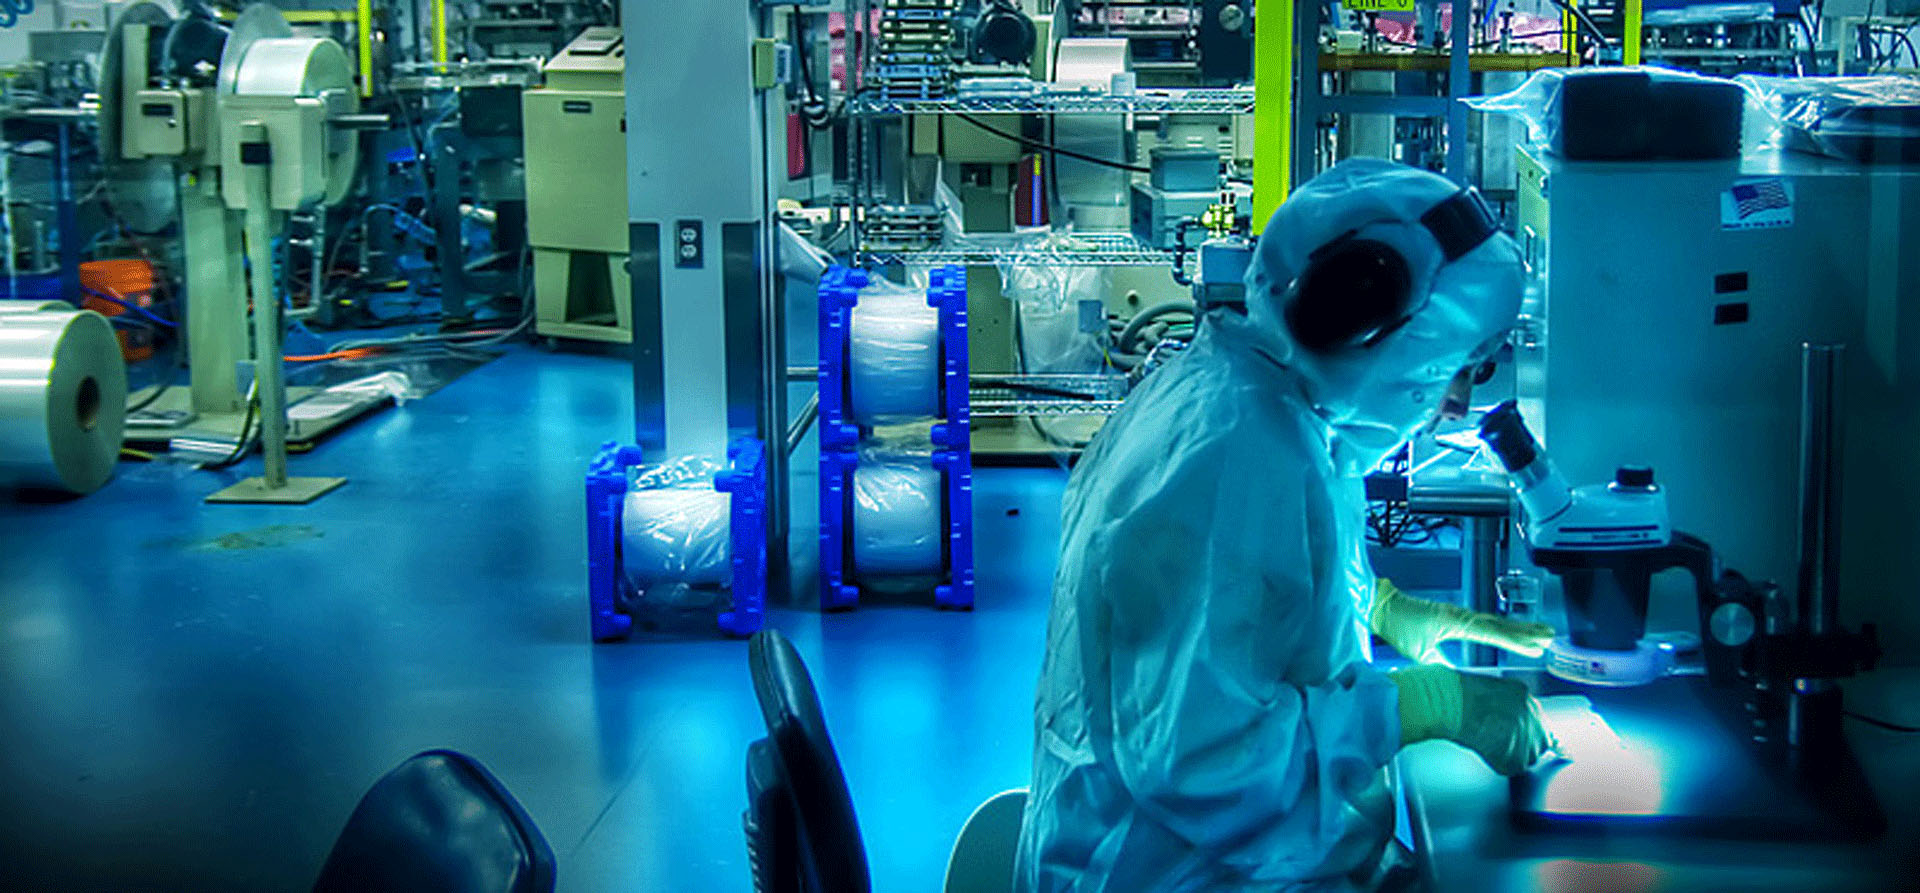 Person using microscope in an industrial setting